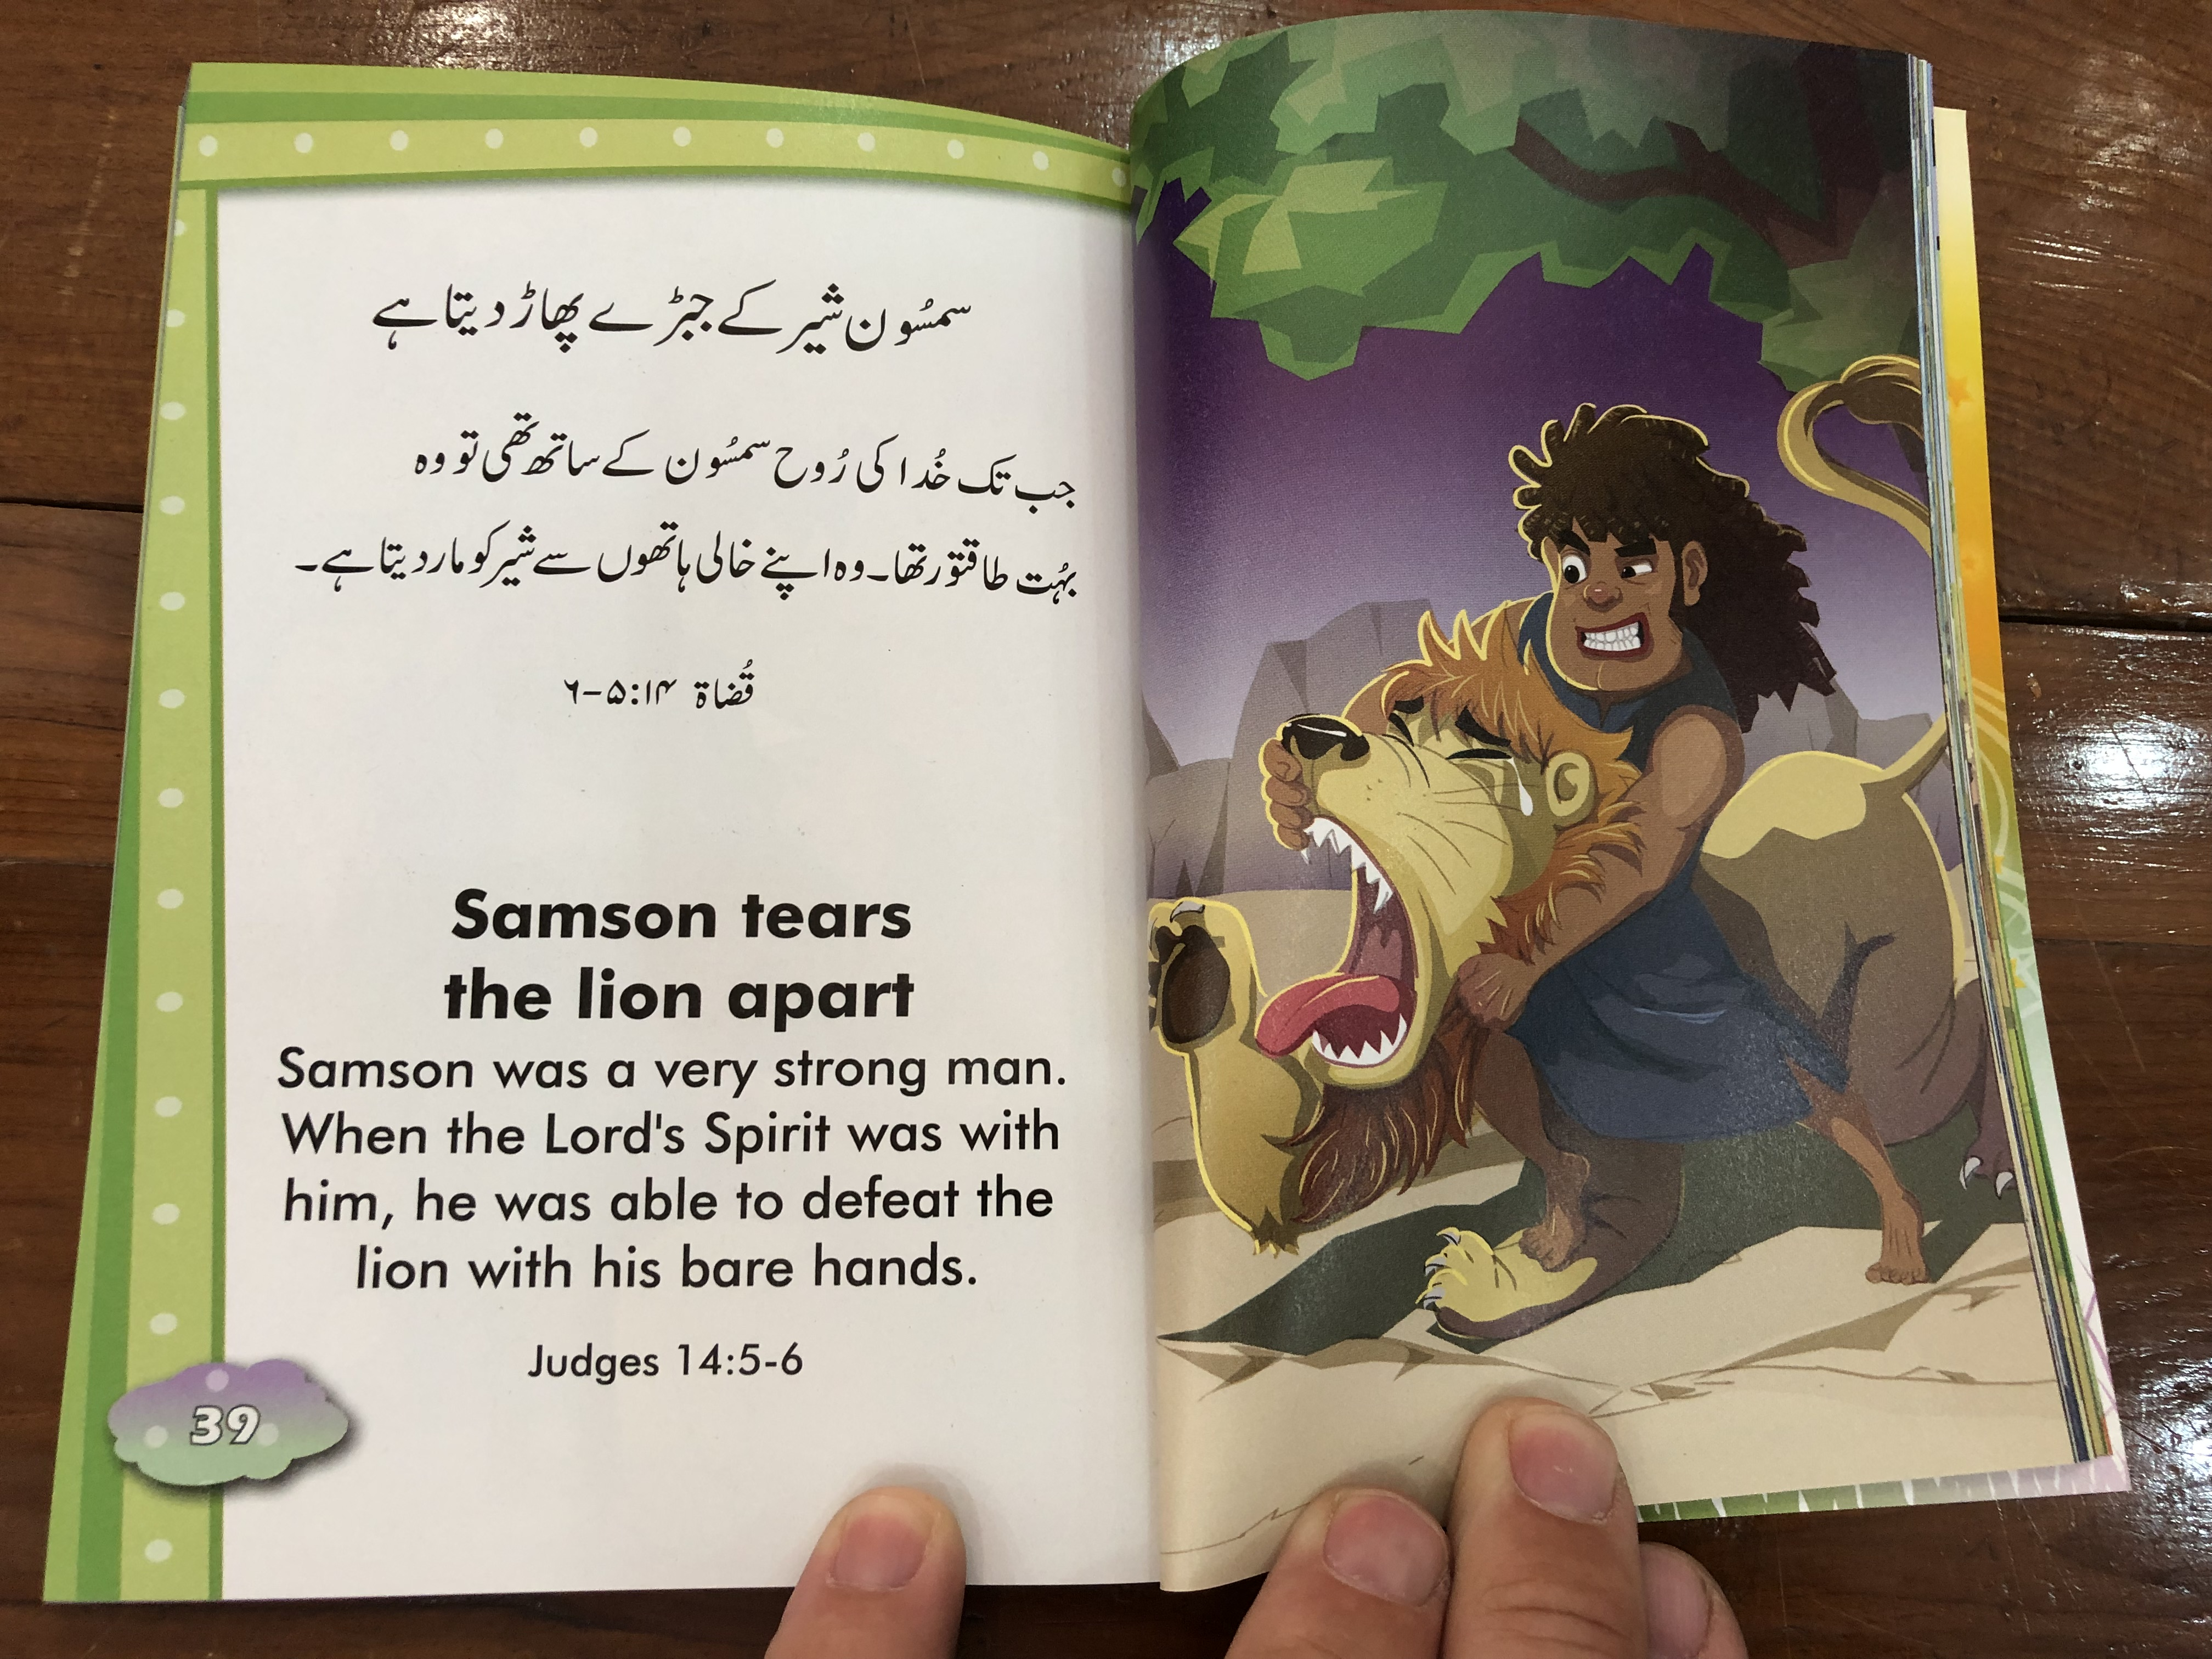 love-of-god-urdu-english-bilingual-edition-korean-bible-society-2018-paperback-70-interesting-stories-from-the-bible-the-best-gift-to-our-children-love-of-god-6-.jpg